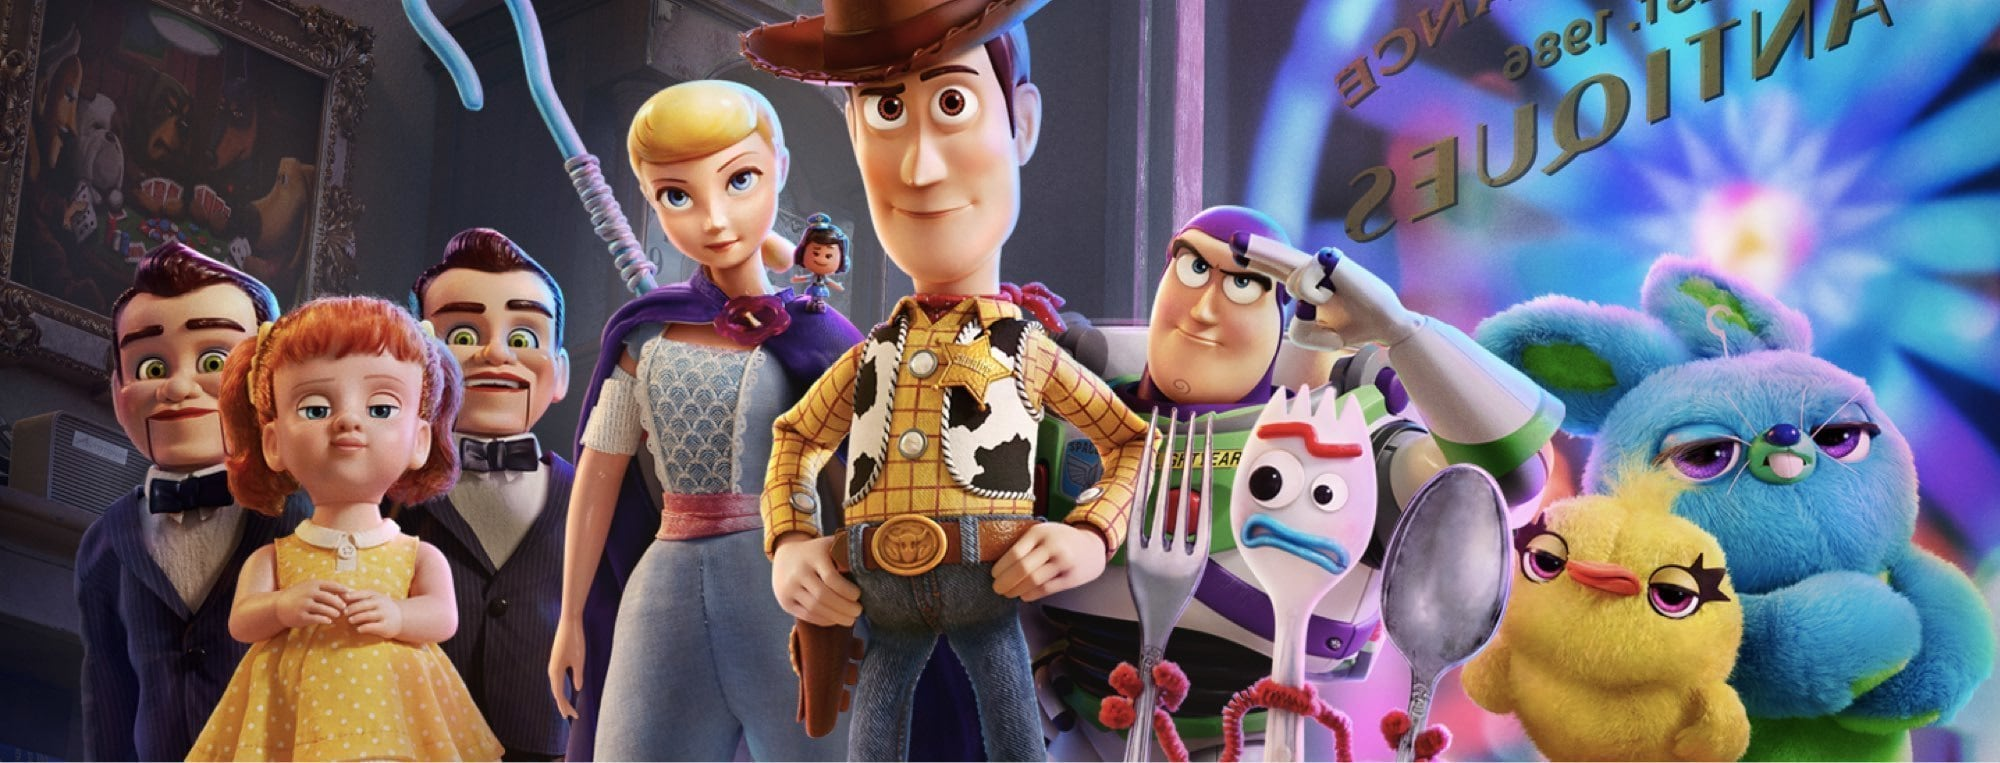 Toy Story 4 - Conhece as personagens